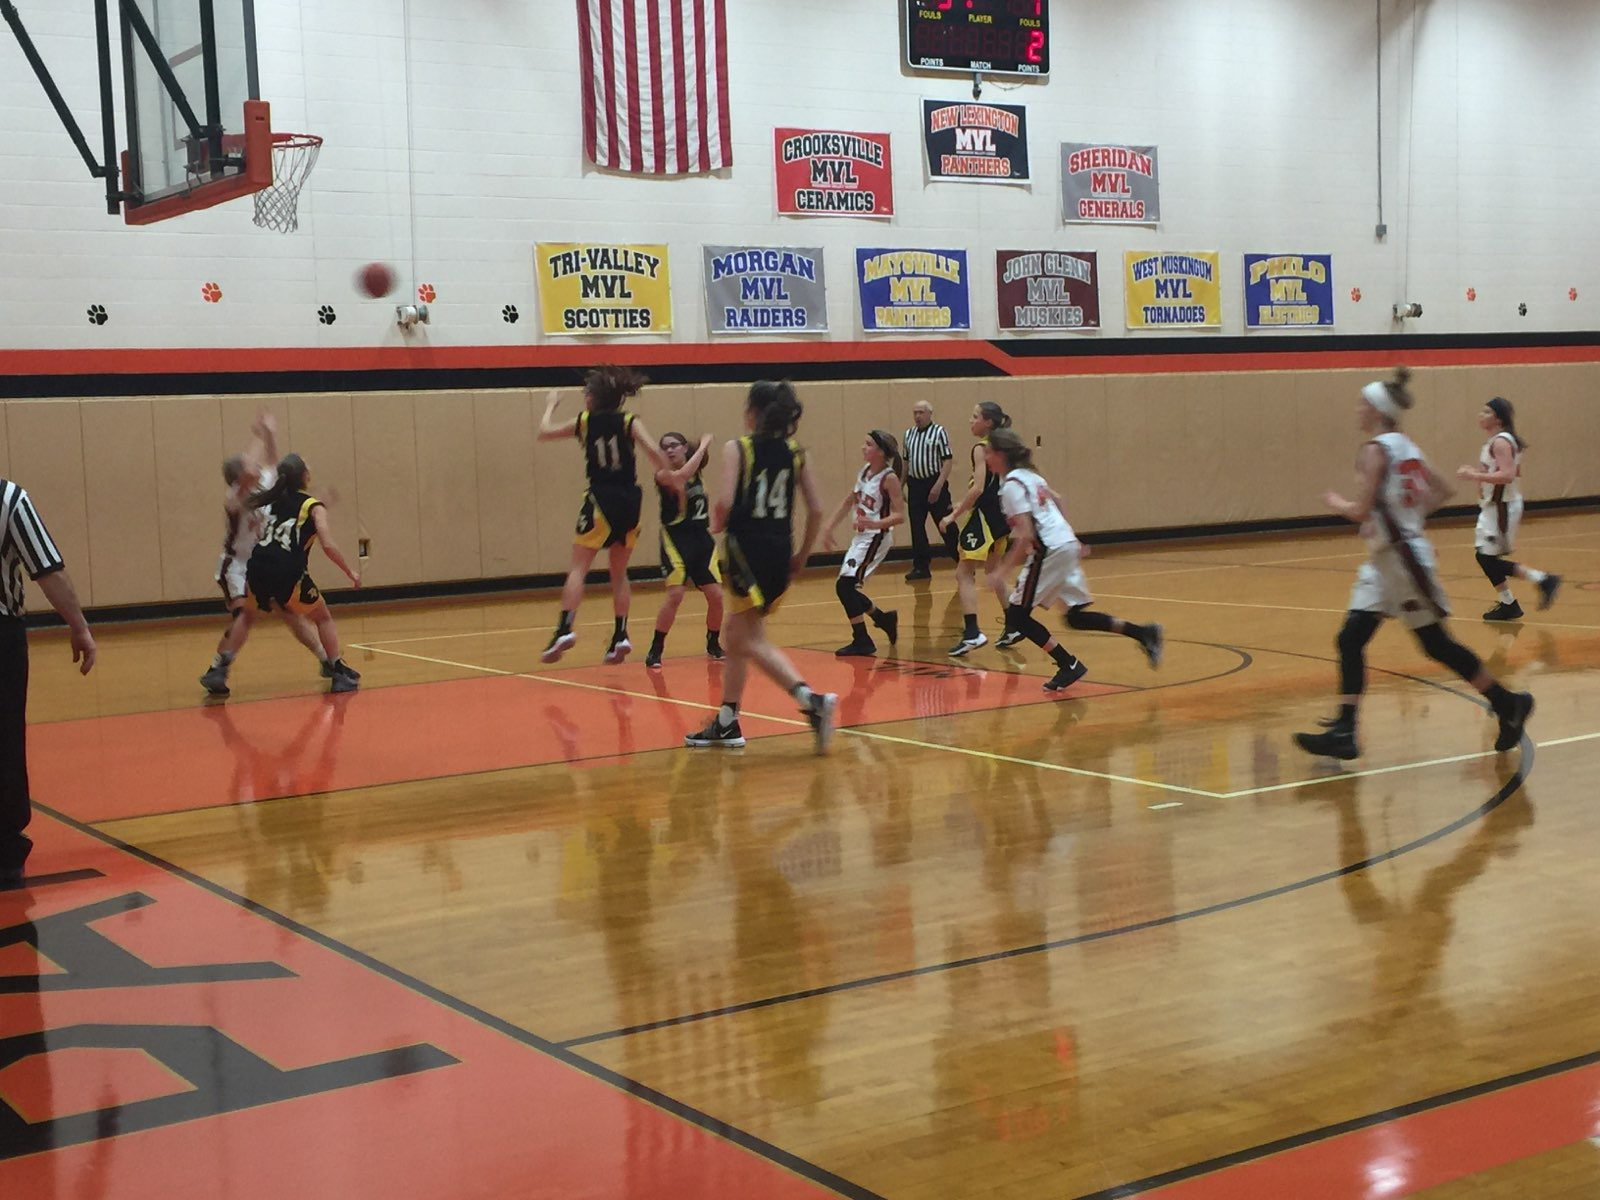 8th grade girls against Tri-Valley